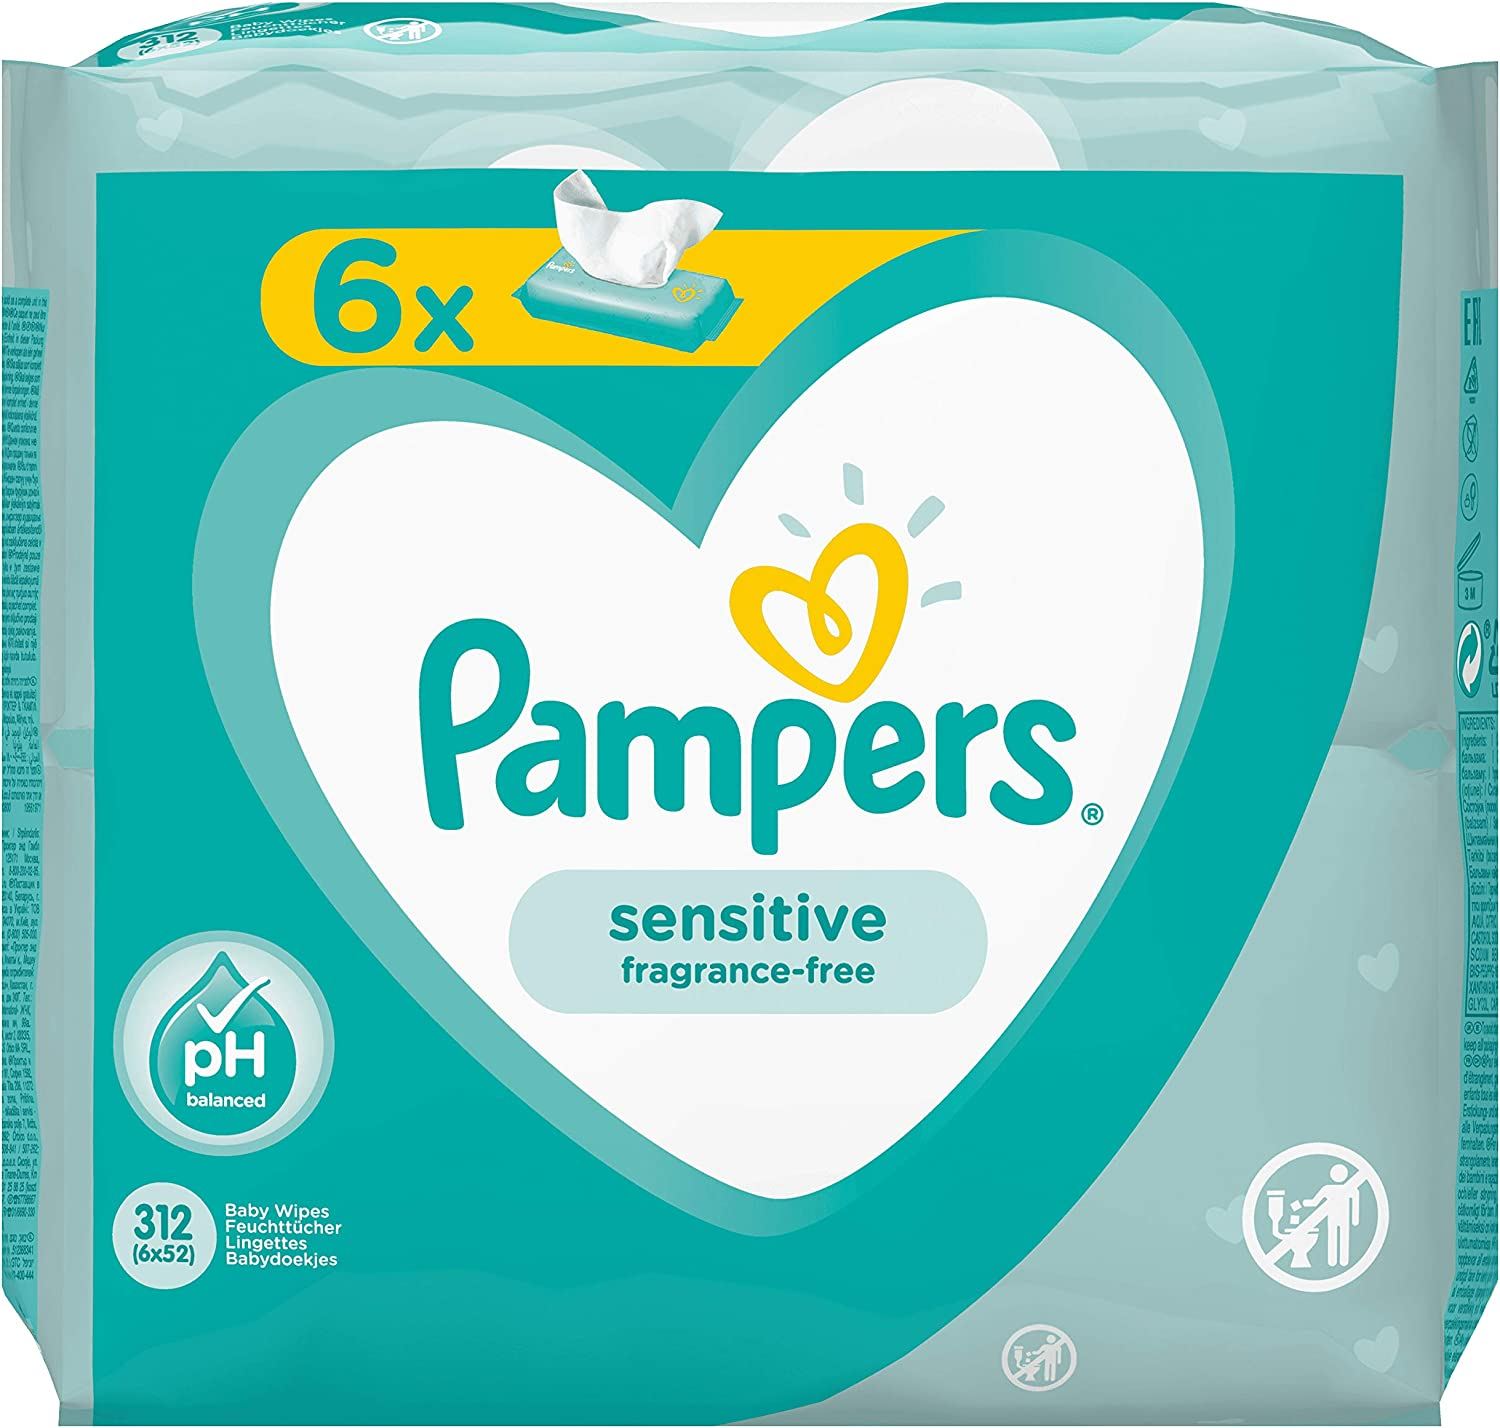 s Pampers Sensitive 81687204 Baby Wet Wipes 52 pc Wet Baby Wipe, Plastic Bag, Girl//Boy, Turquoise, White, Germany, 1.79 kg